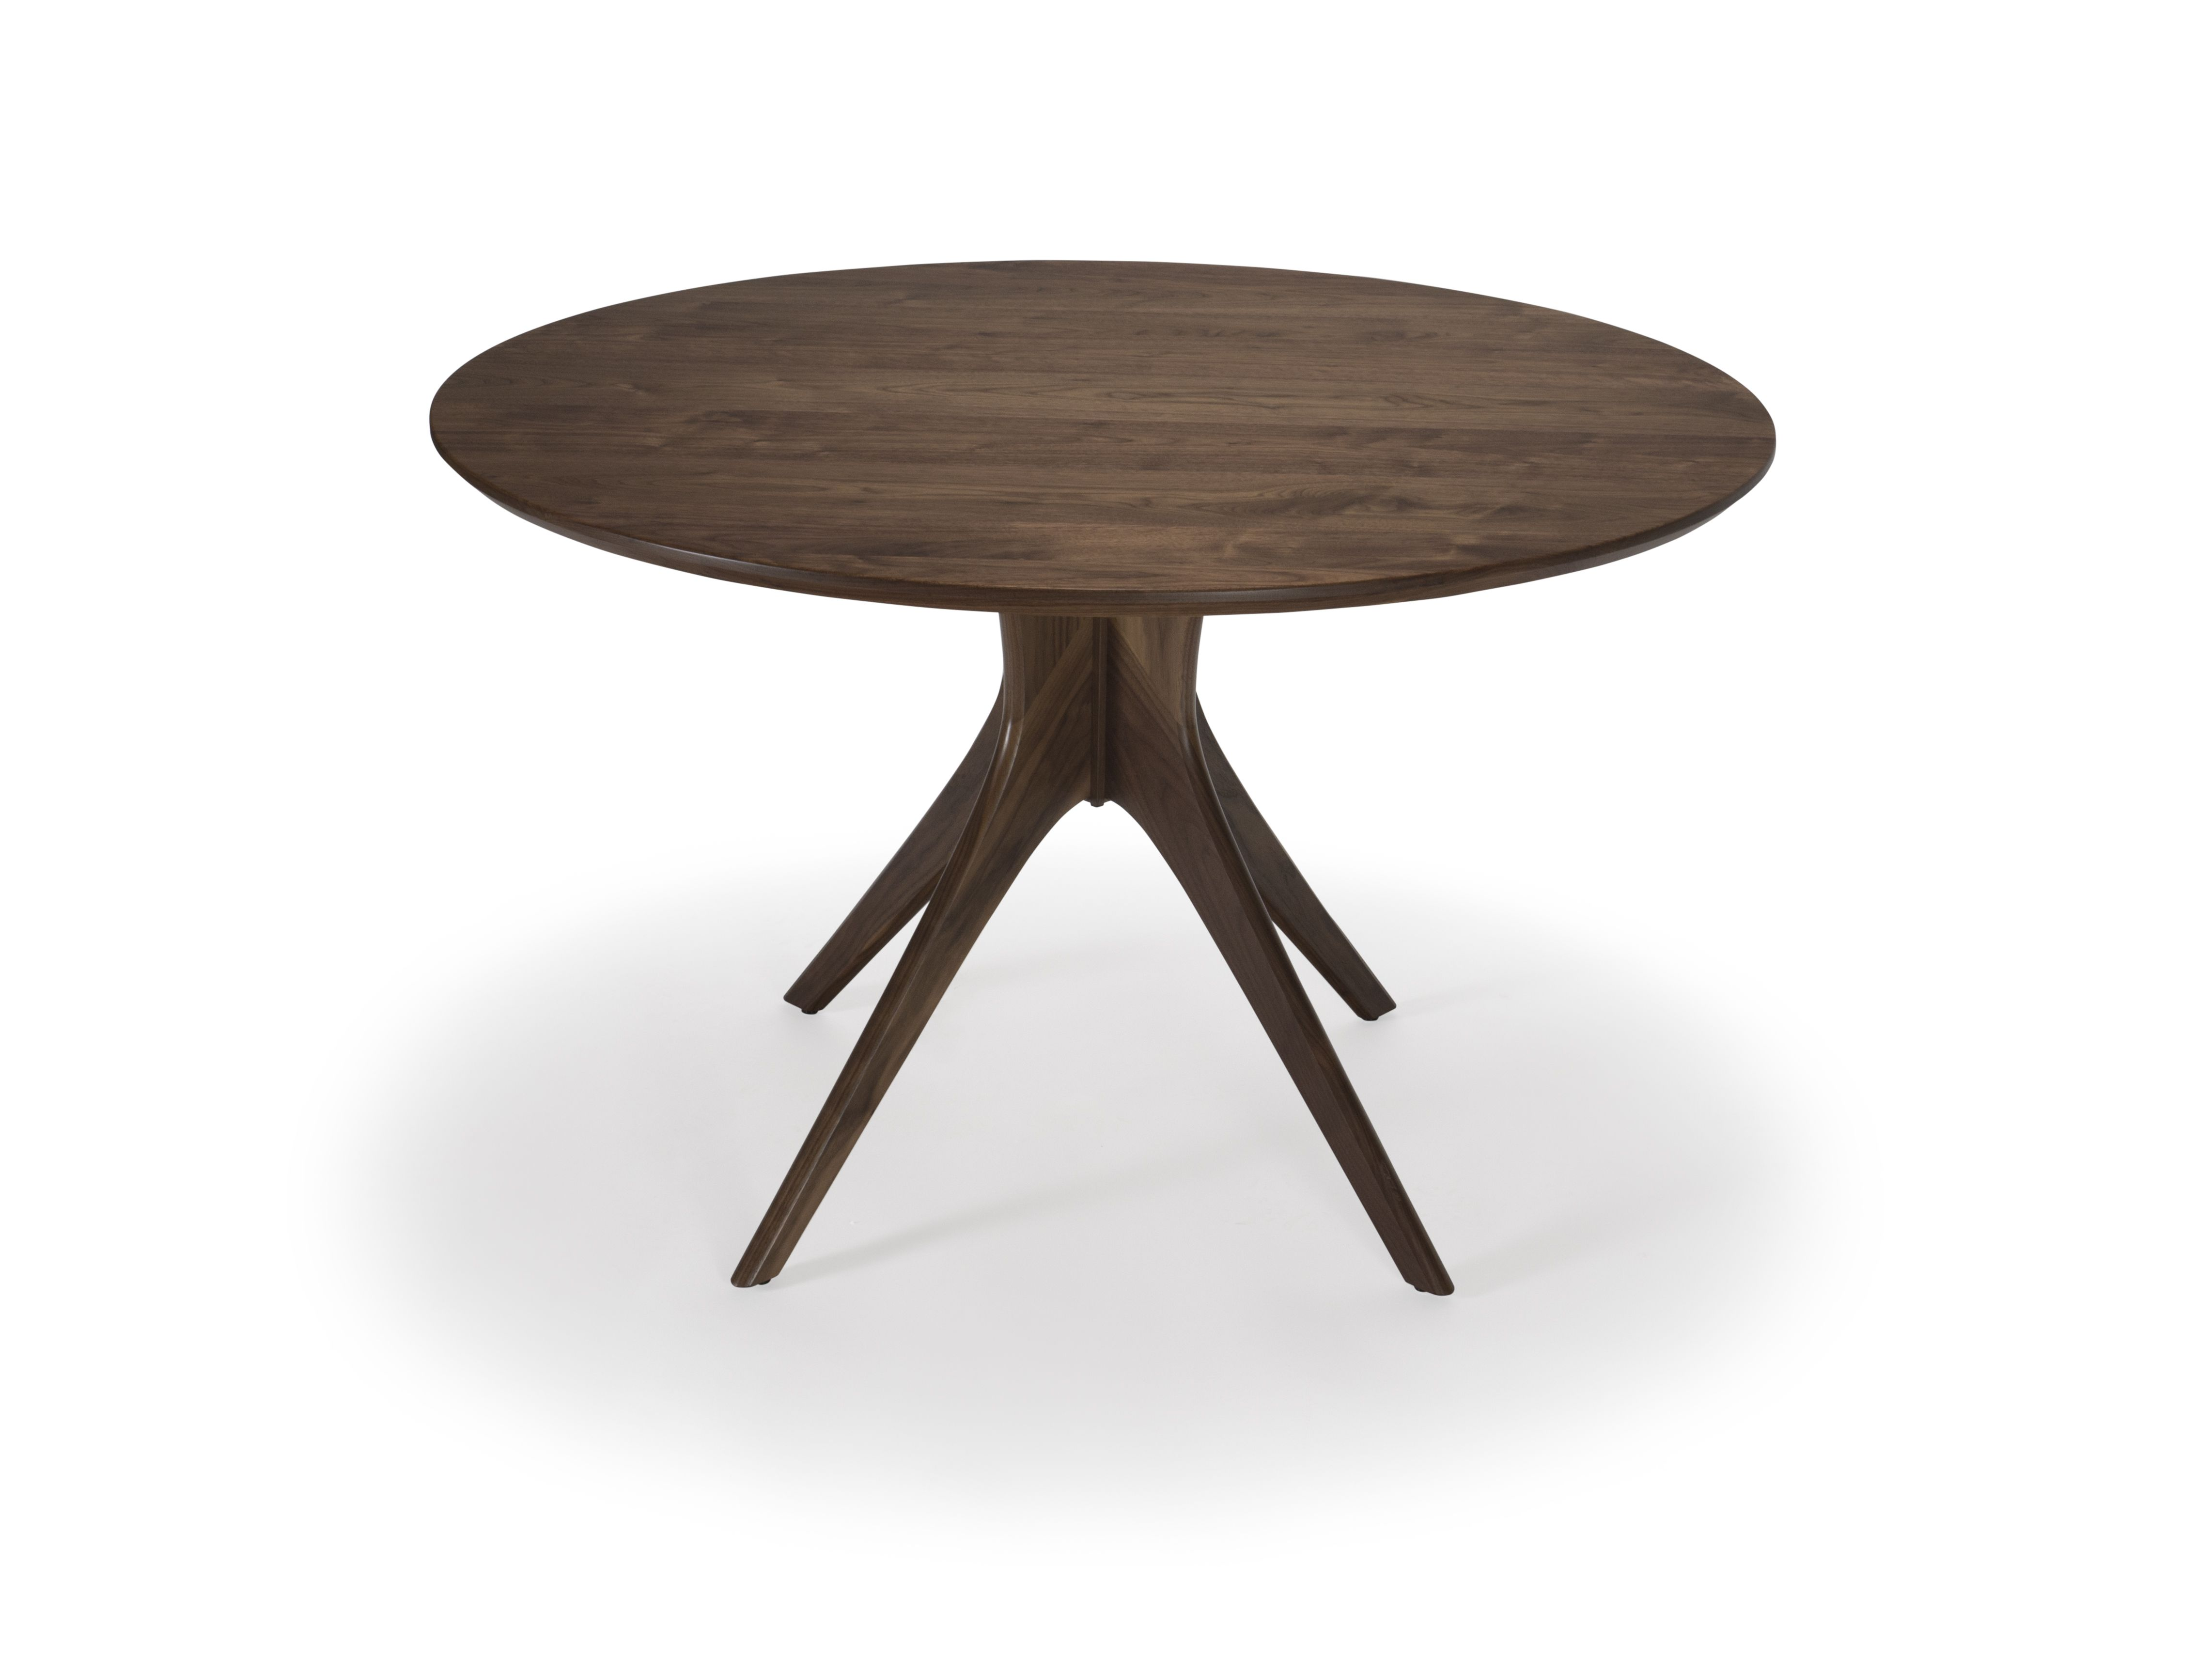 Hand Crafted Round Walnut Table Mid Century Modern Dining